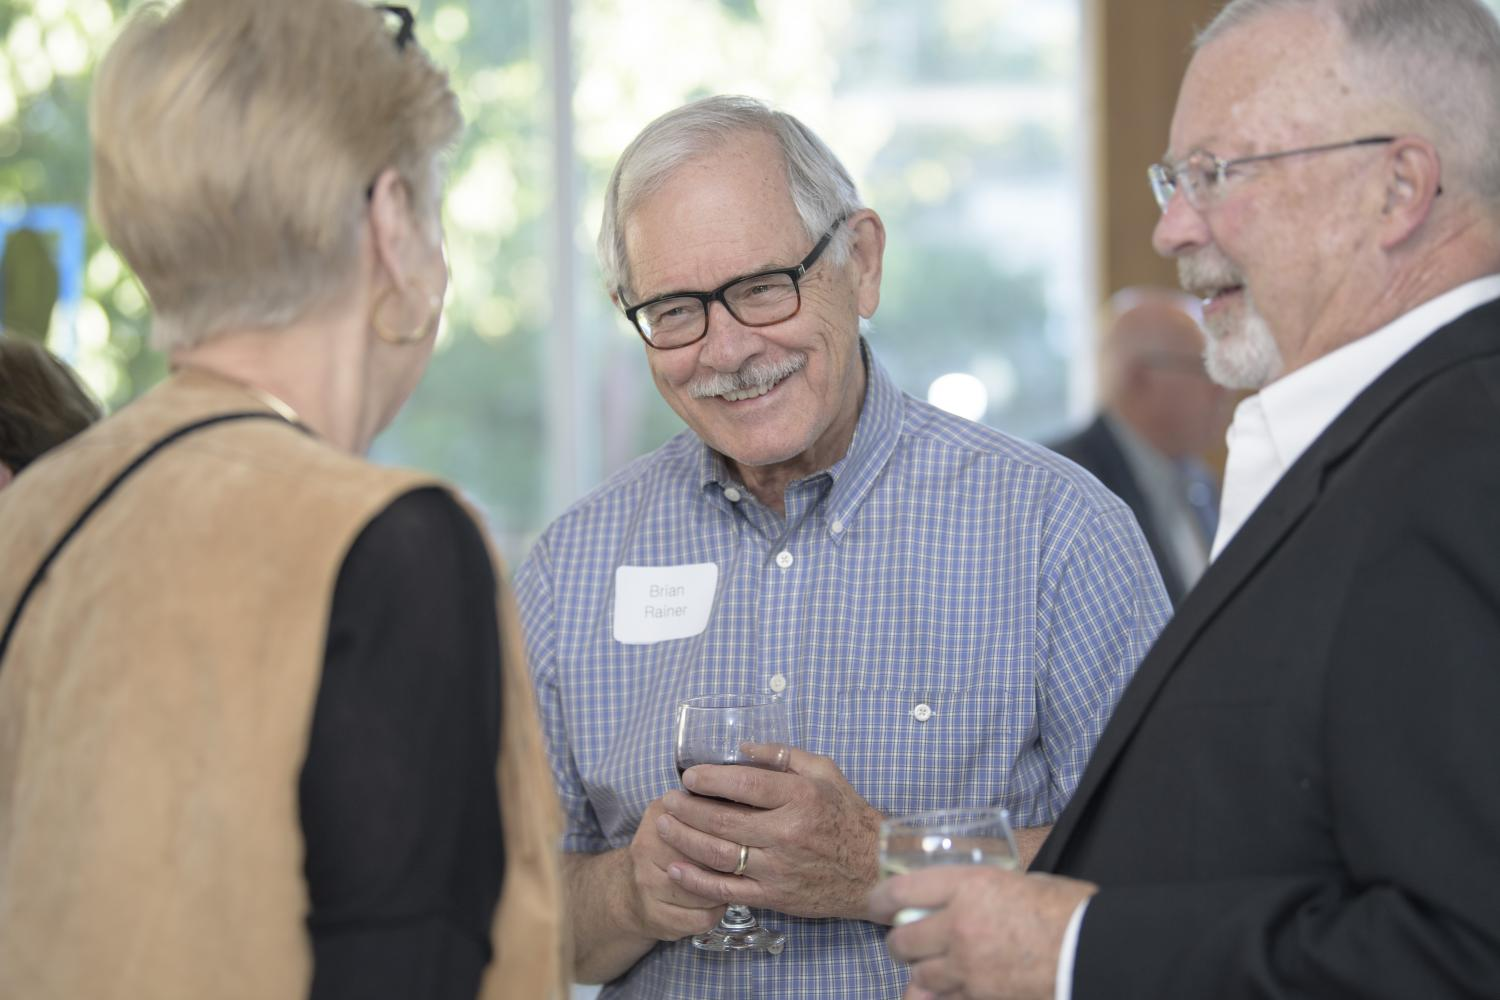 Three friends, a woman and two men, talk and laugh at the member reception at Krannert Art Museum